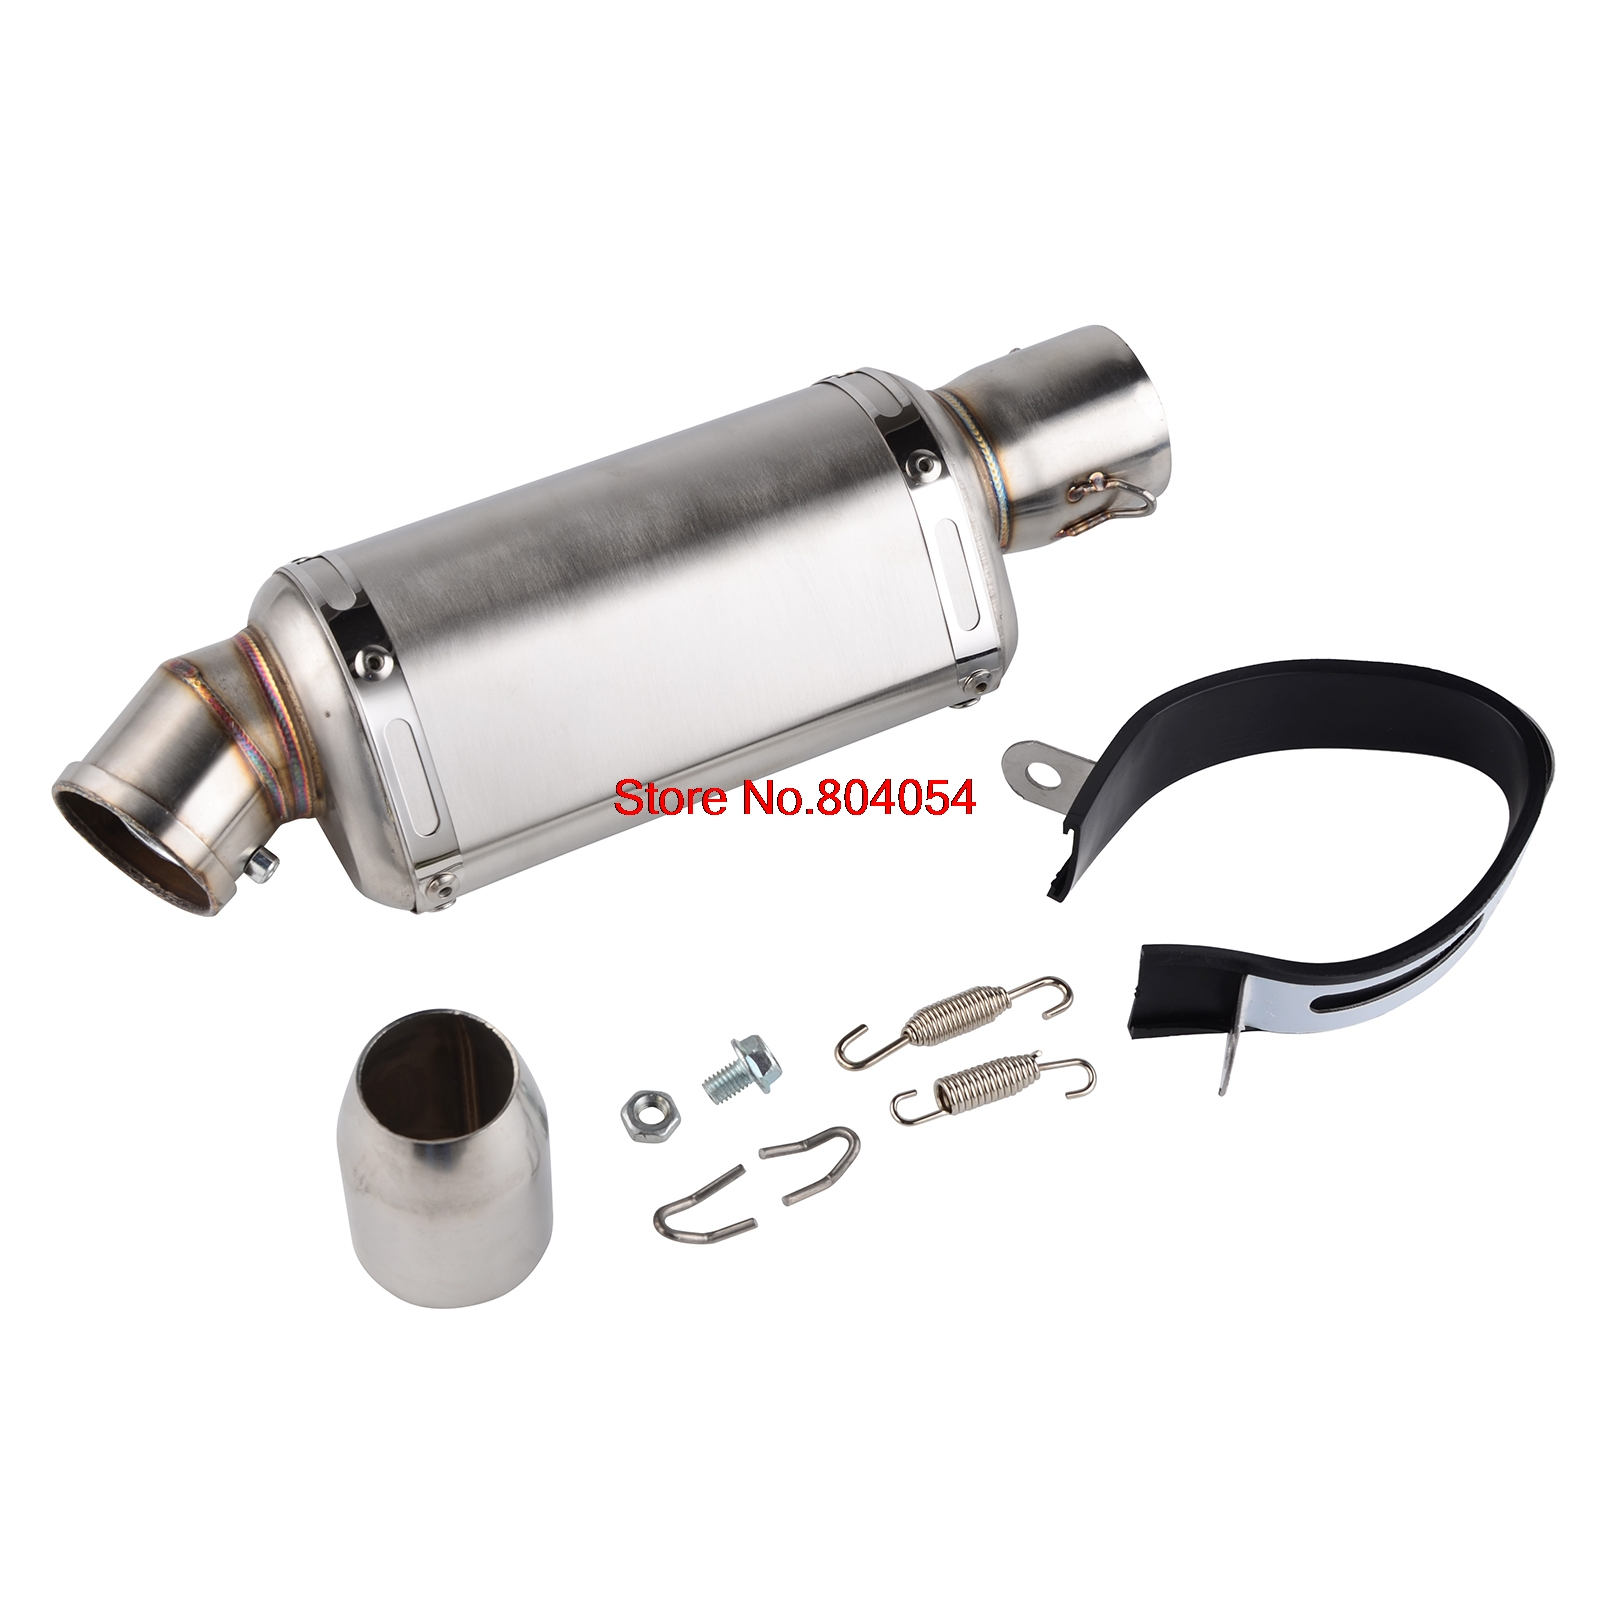 38-51MM Universal Muffler Exhaust Pipe Removable DB Killer Silencer For Dirt Bike Street Bike Scooter ATV Quad motorcycle gp exhaust universal muffler 38 51mm slip on for dirt bike street bike scooter atv quad new